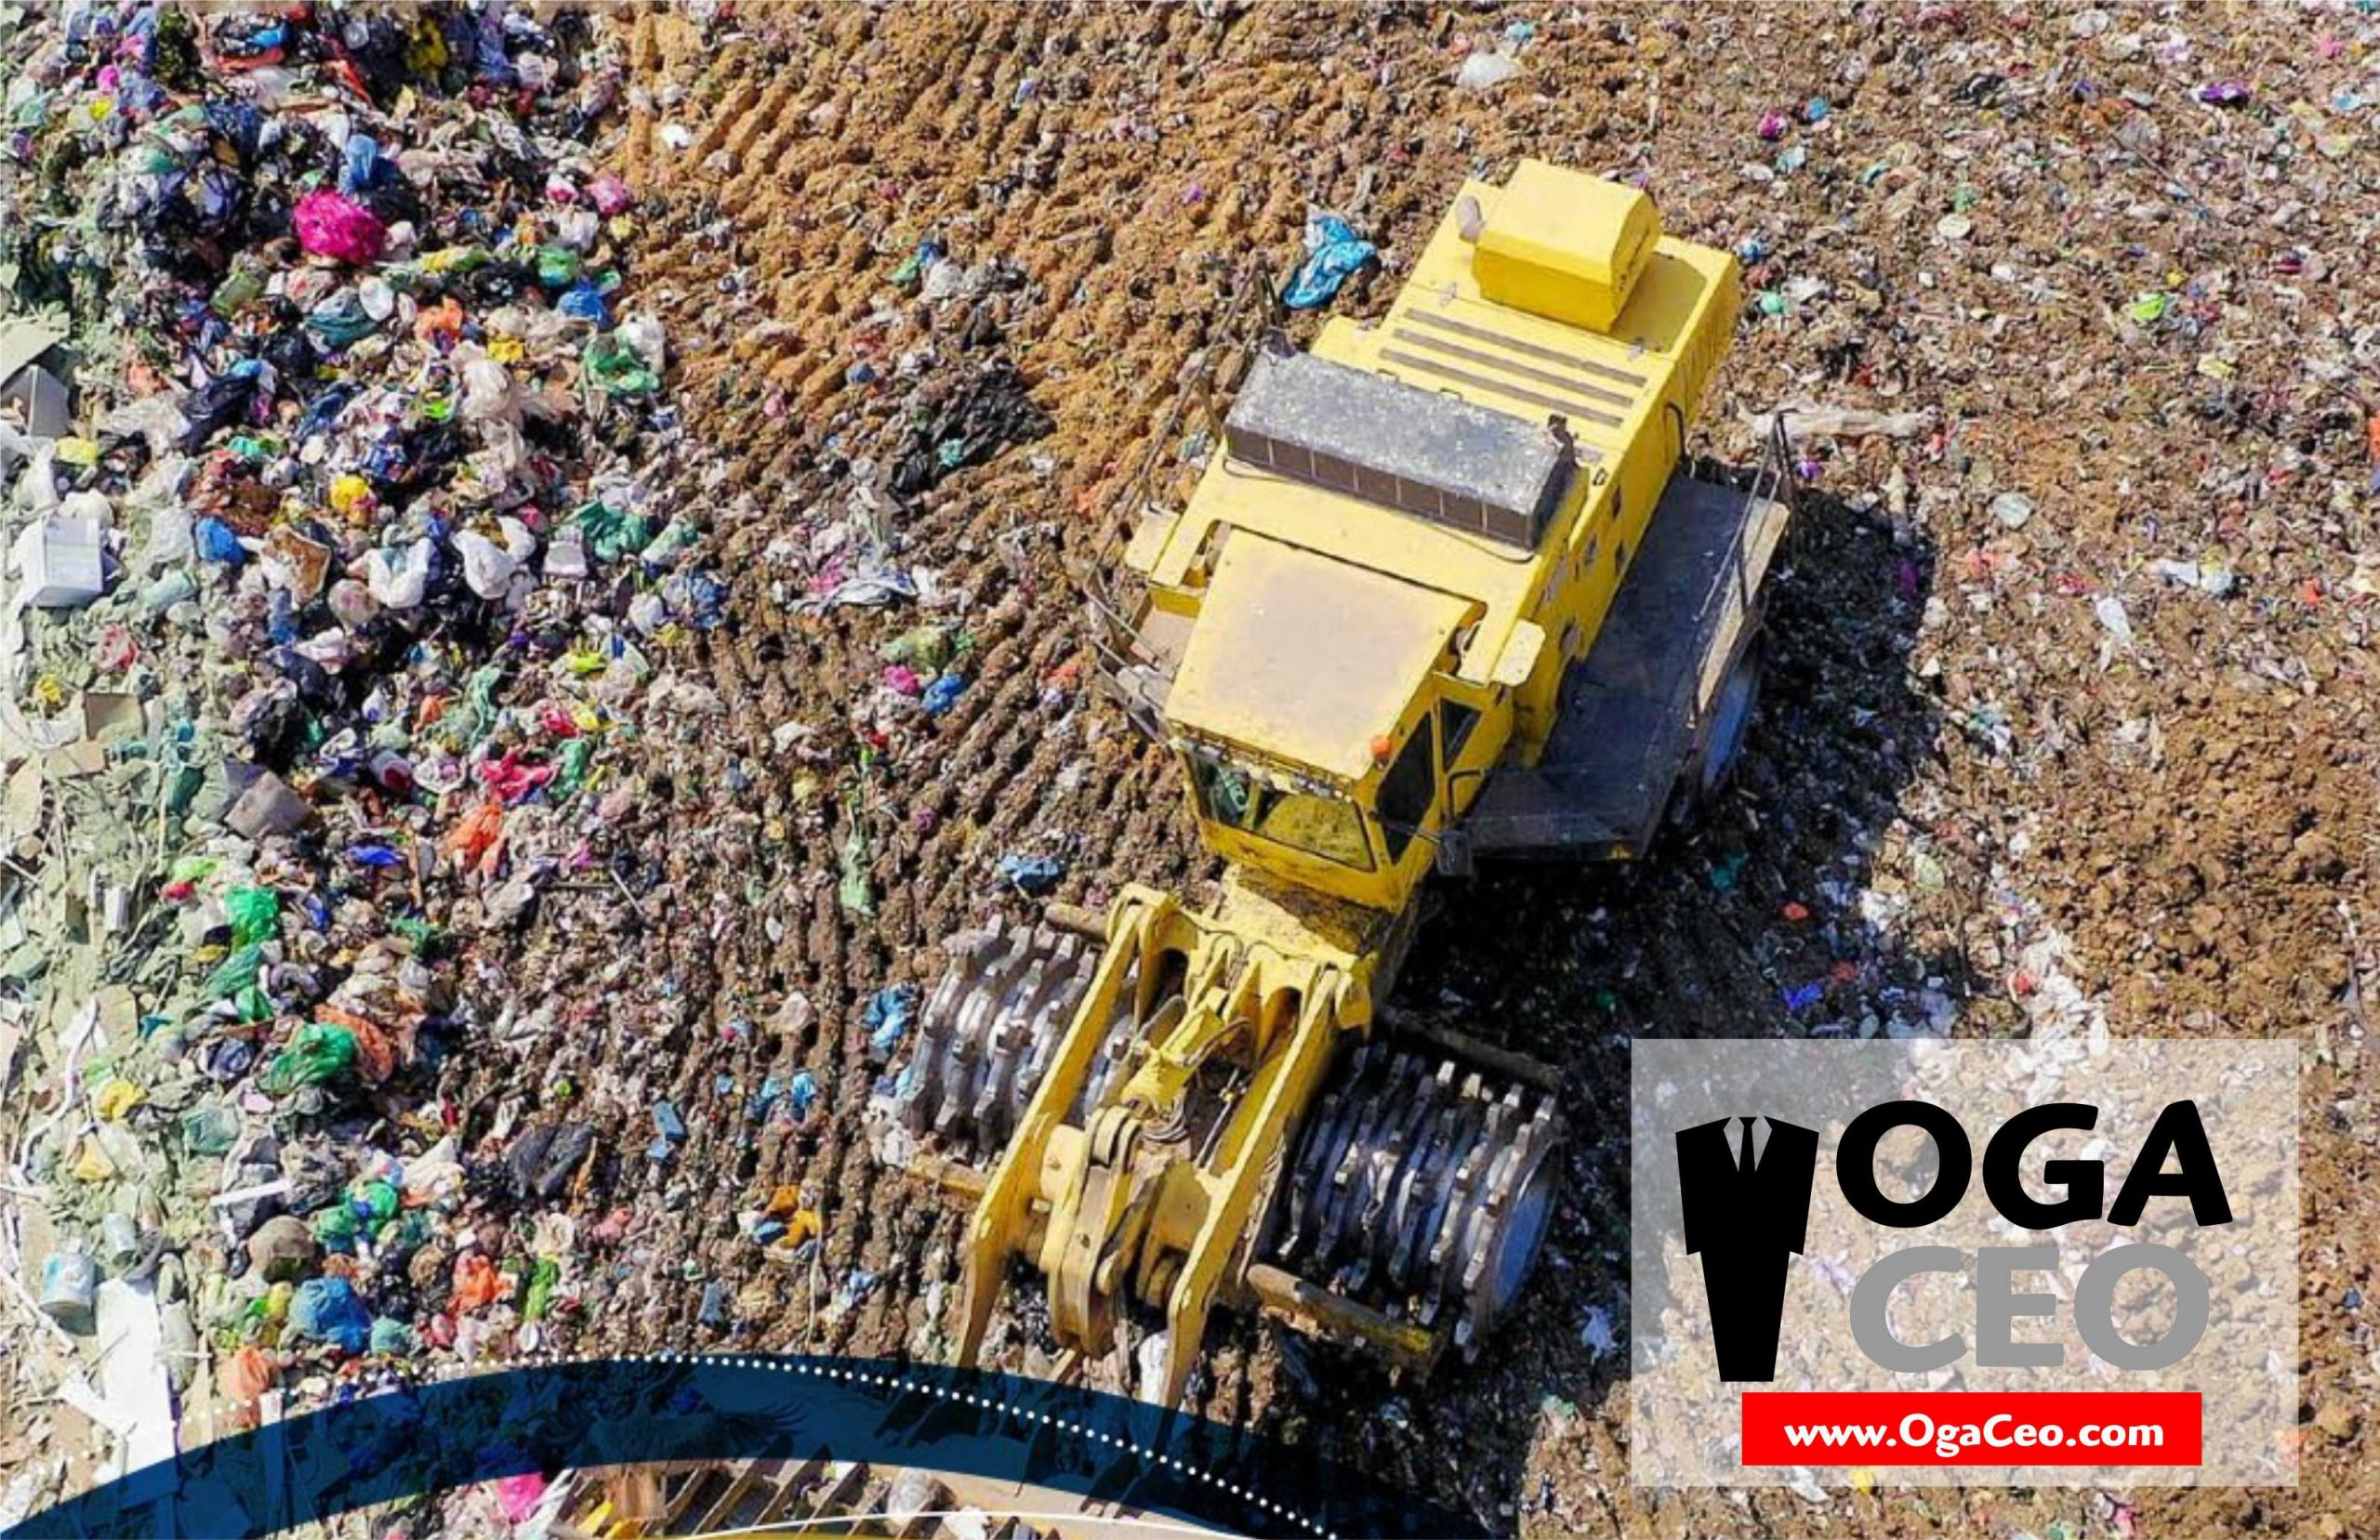 World Bank: The Volume of Waste will Triple by 2050